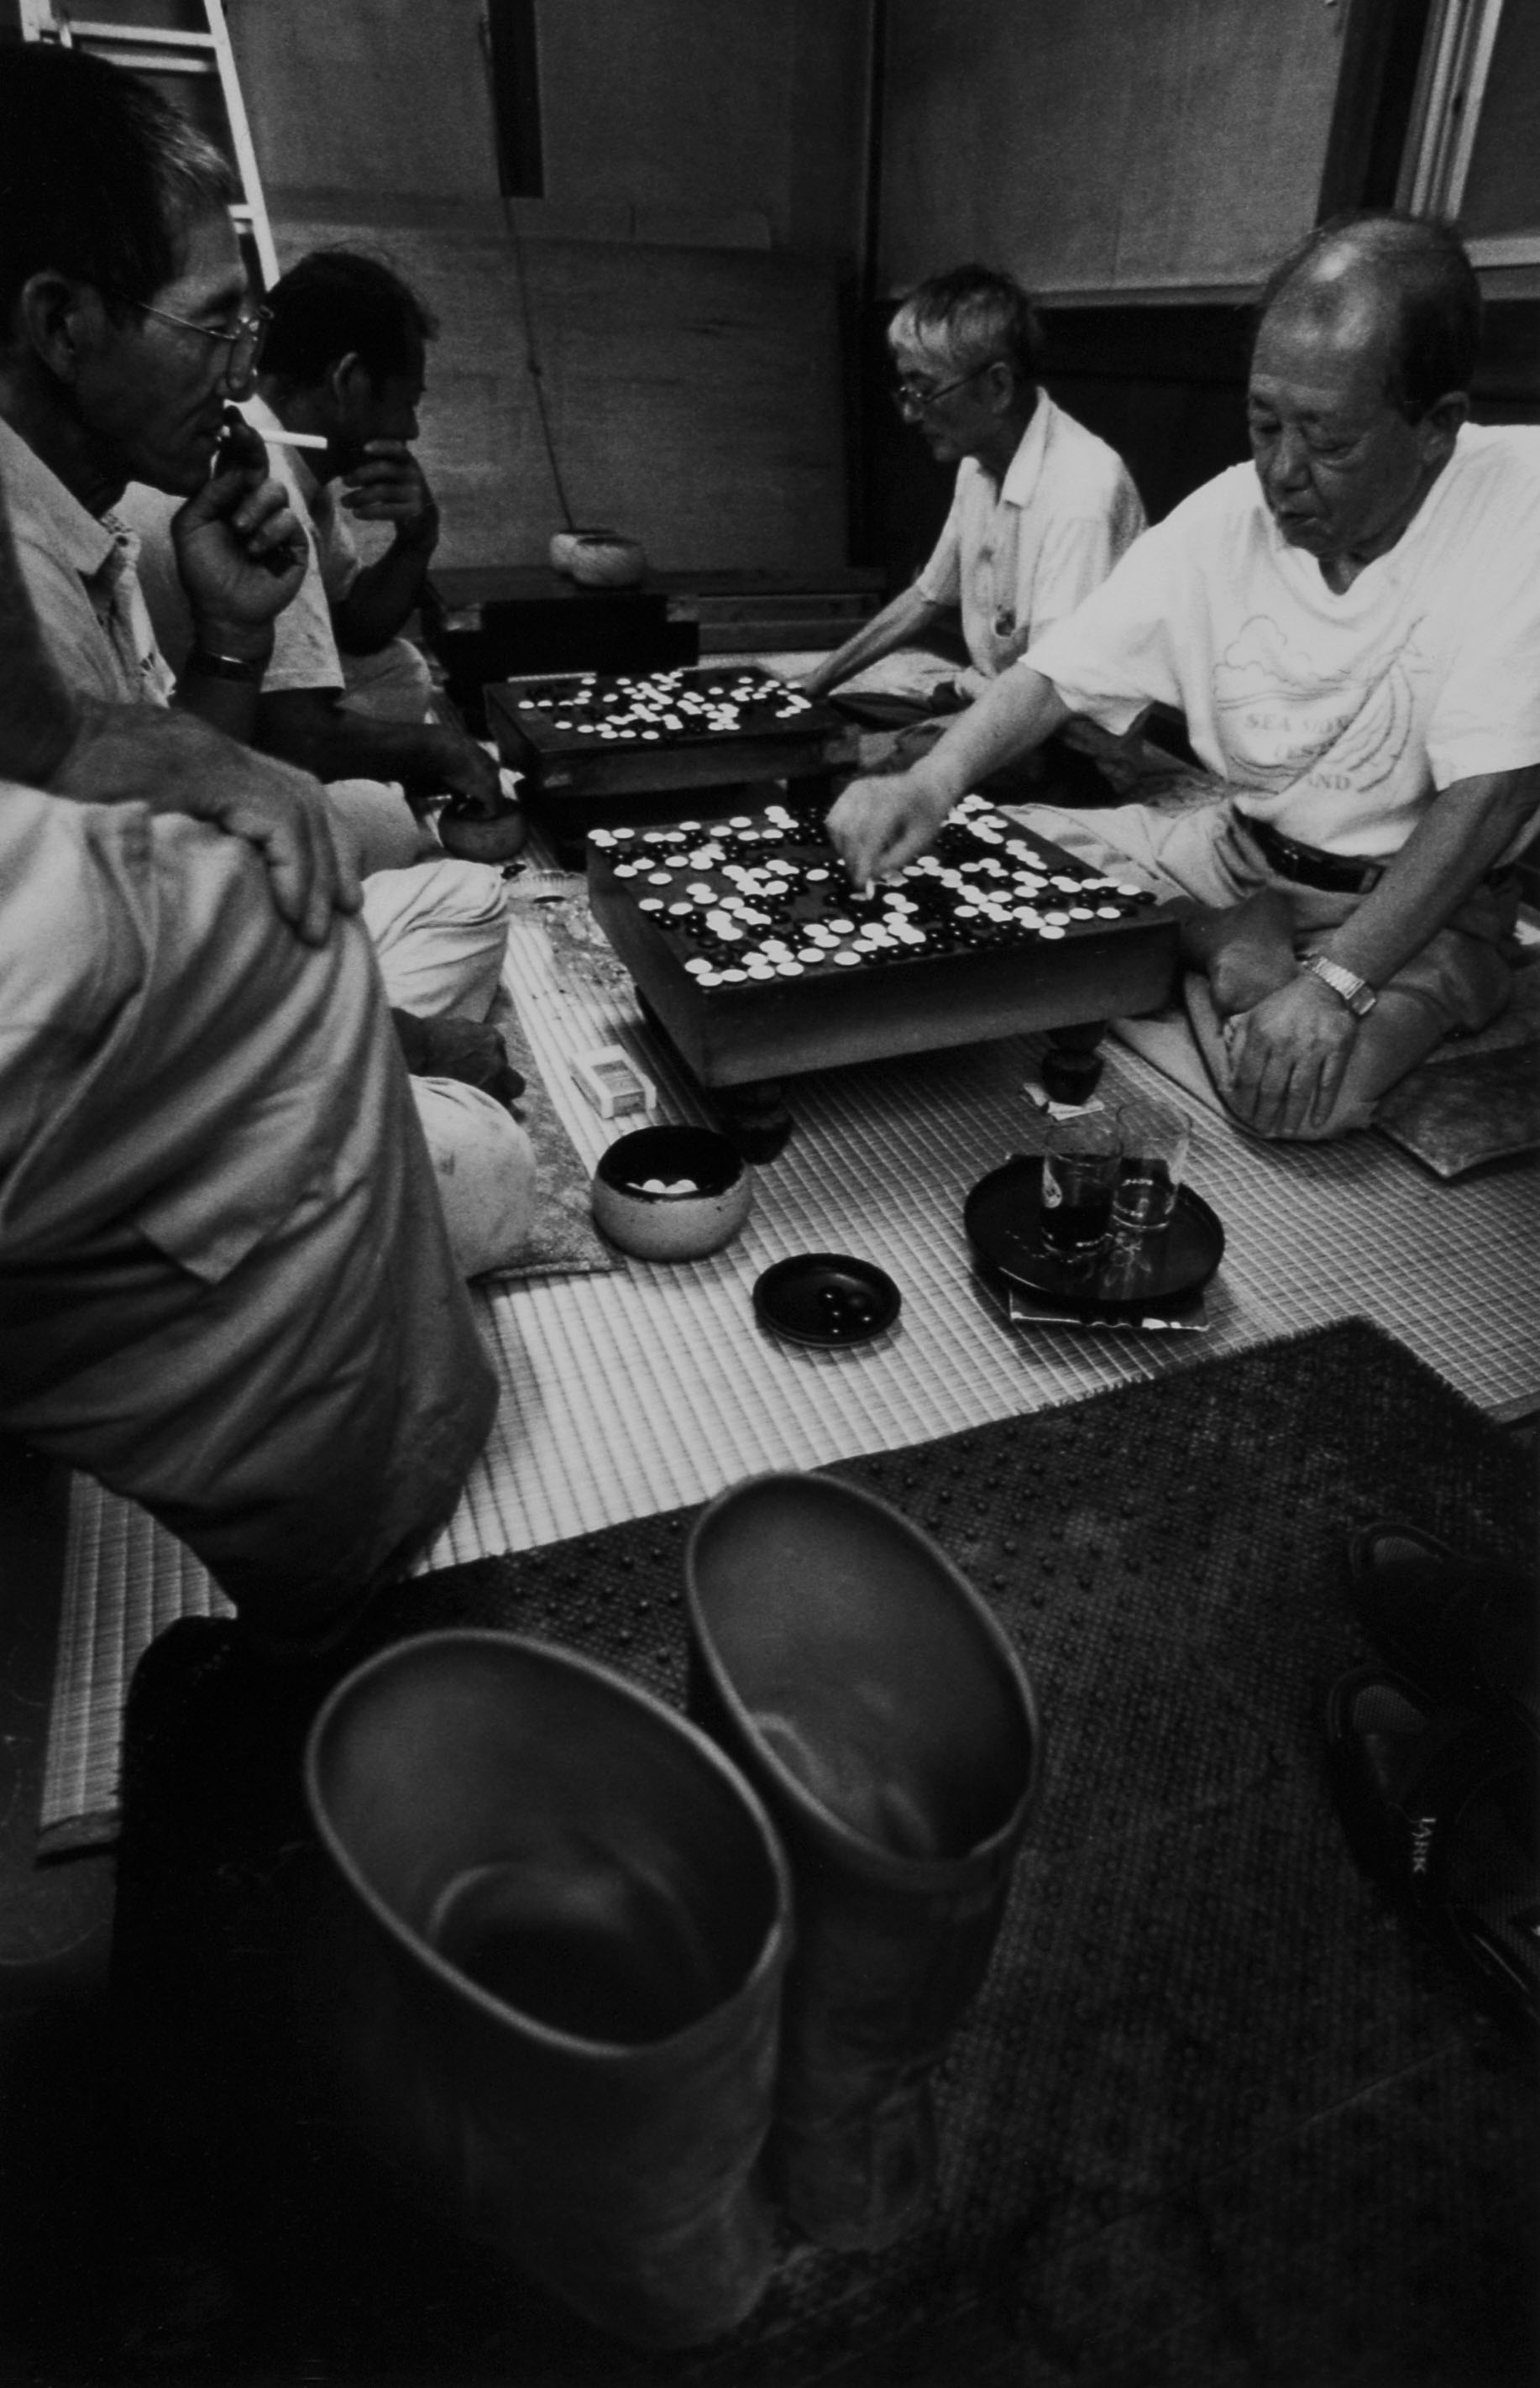 The locals play Go game after work in a room next to Takahashi barbershop, Nakanogo district.